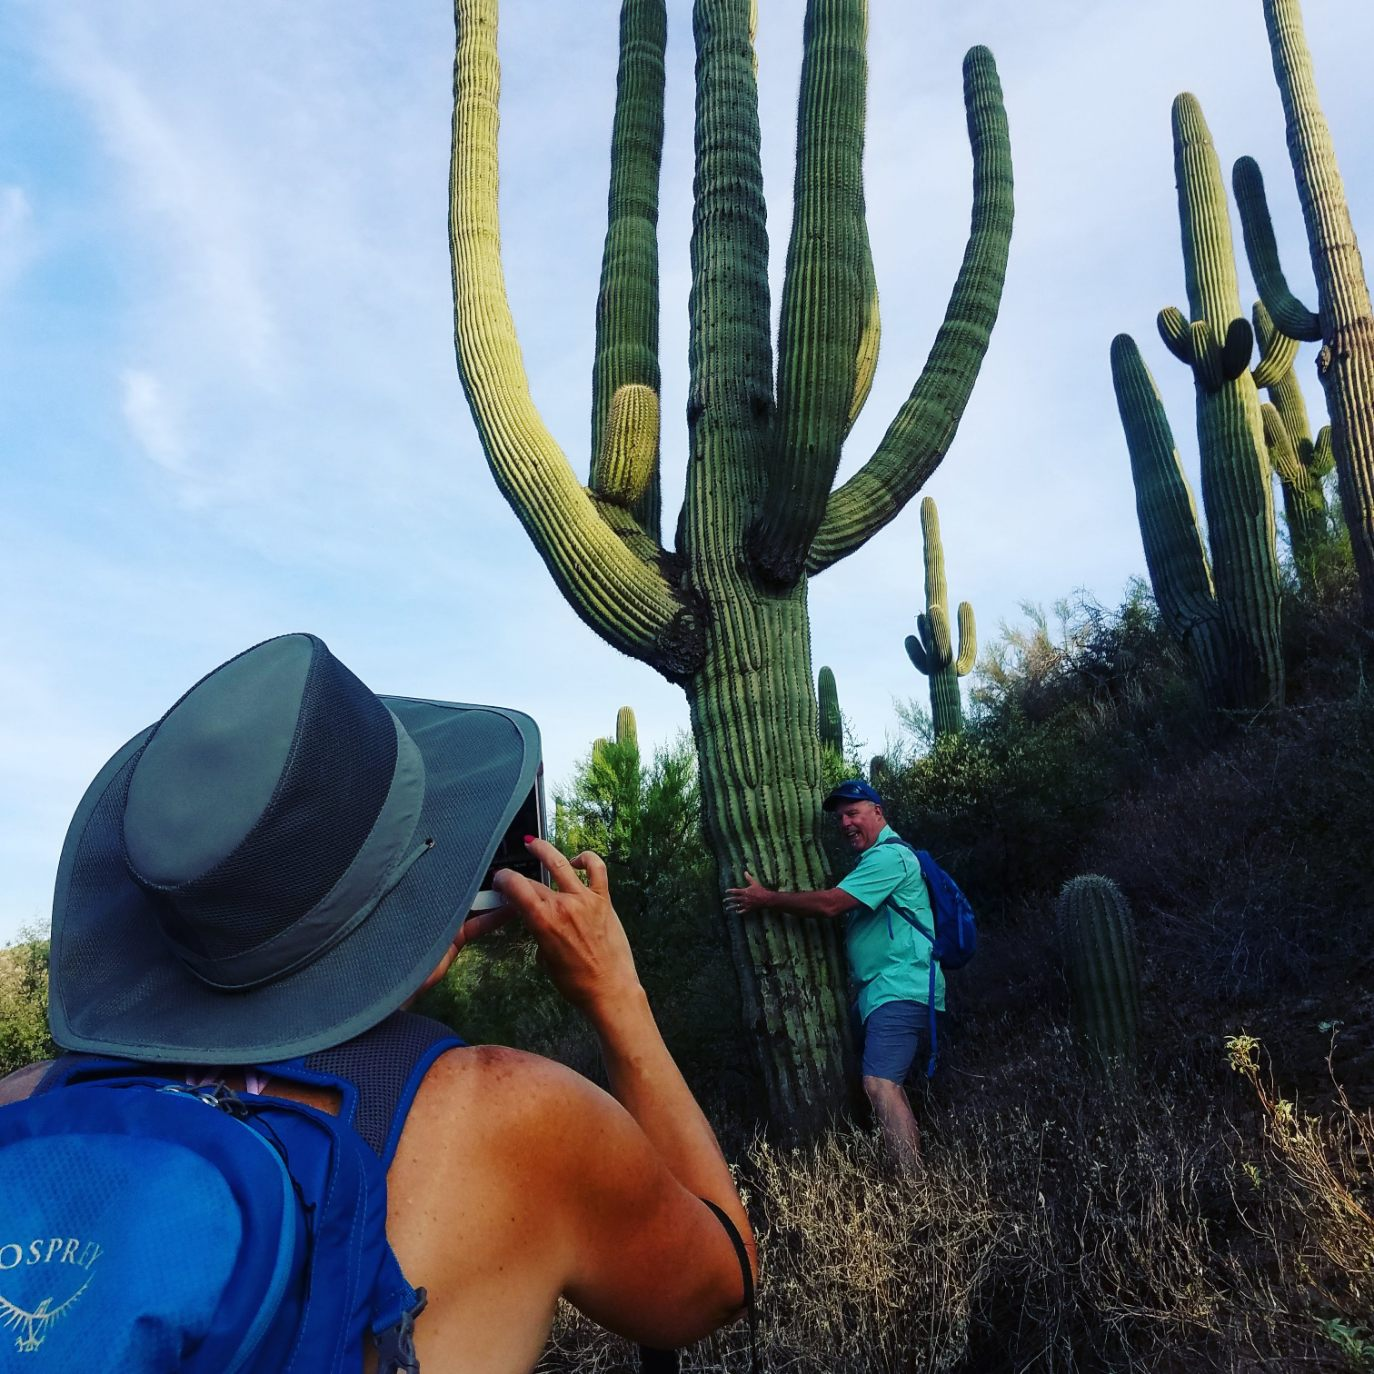 Saguaro Cactus majestically shooting skyward while a Wild Bunch Desert Guides guest takes a picture of another guest hugging the cactus.